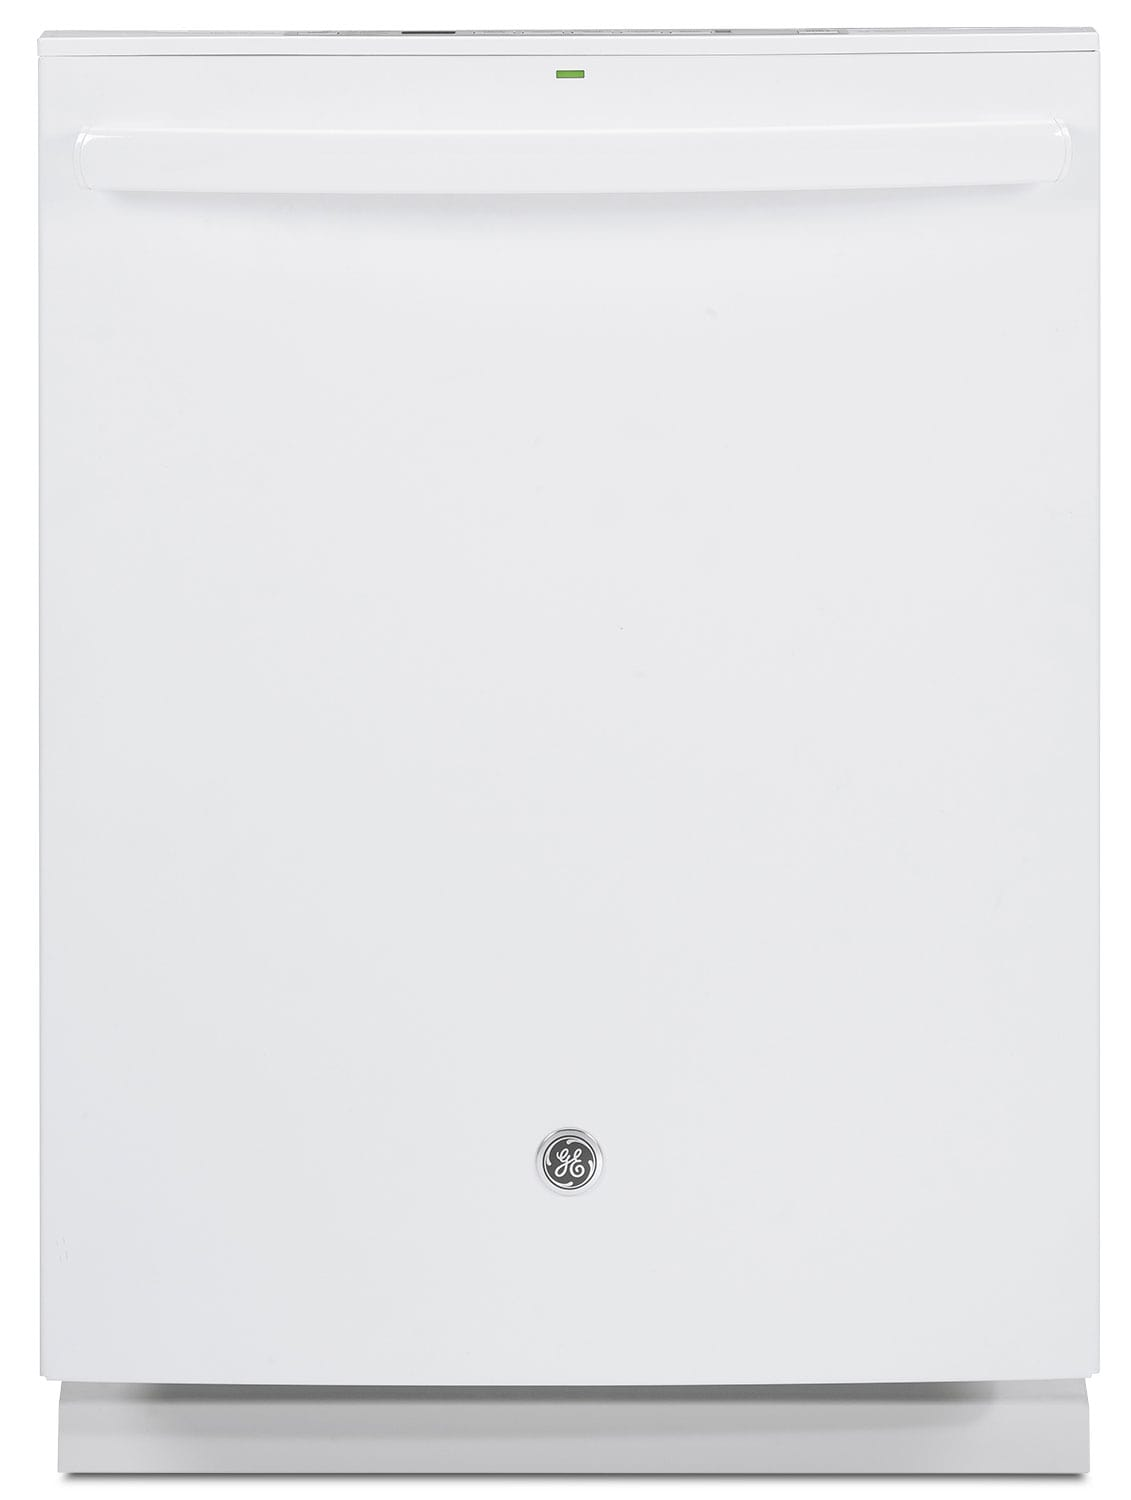 GE Tall-Tub Built-In Dishwasher – GDT655SGJWW